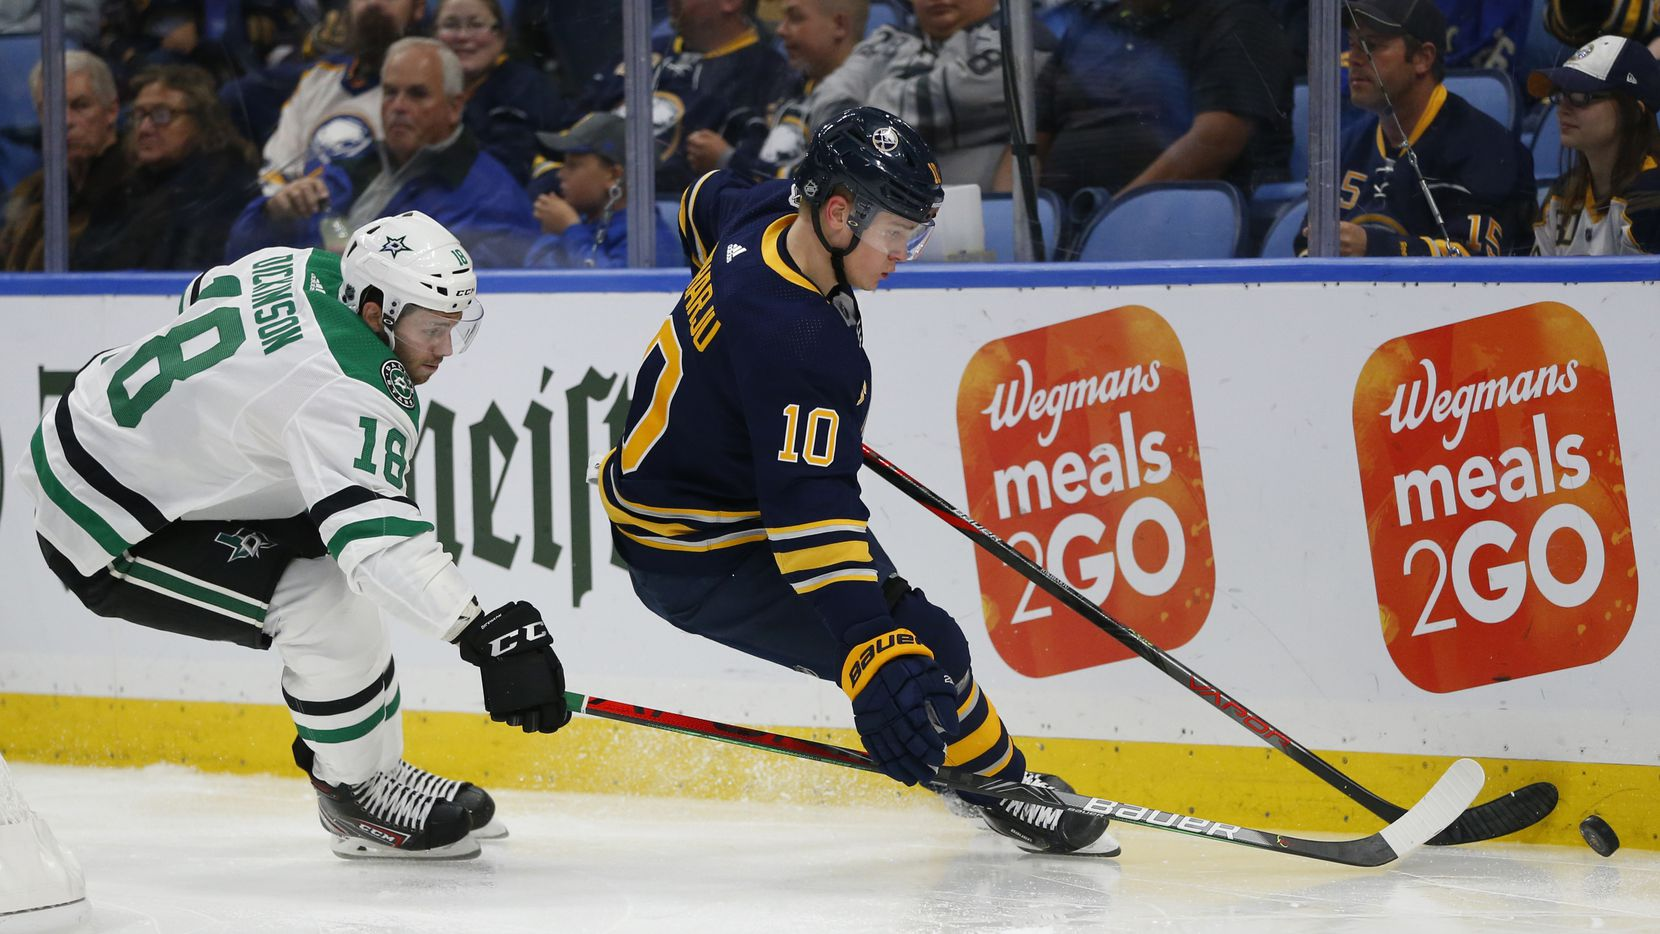 Buffalo Sabres defenseman Henri Jokiharju (10) and Dallas Stars forward Jason Dickinson (18) battle for the puck during the second period of an NHL hockey game, Monday, Oct. 14, 2019, in Buffalo N.Y.